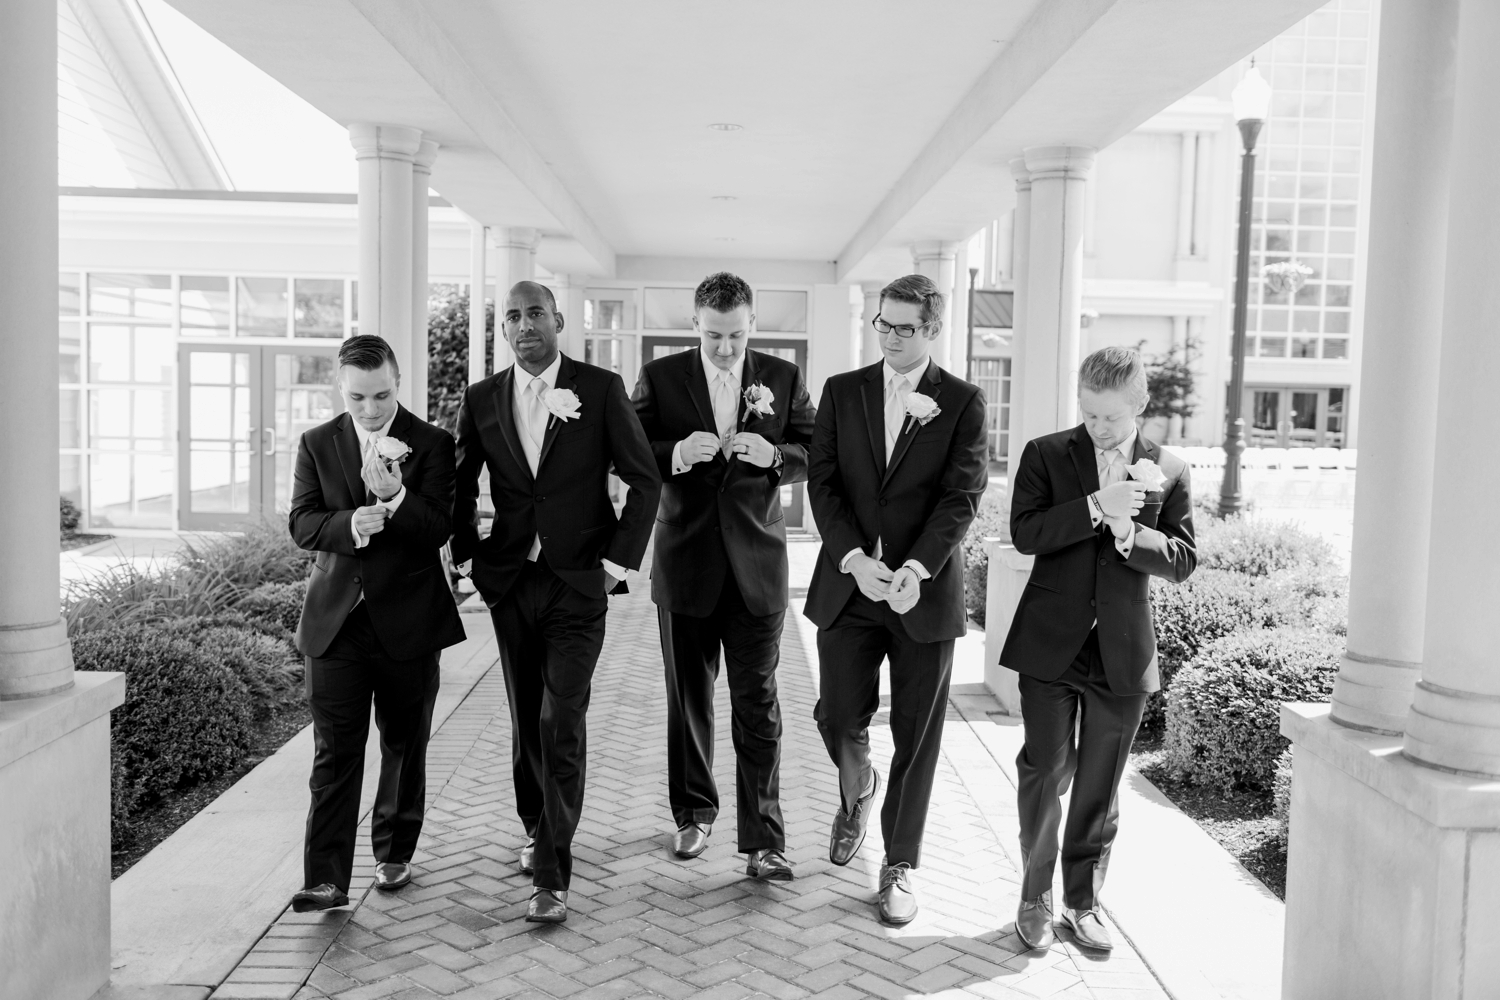 Community_Life_Center_Indianapolis_Indiana_Wedding_Photographer_Chloe_Luka_Photography_6921.jpg